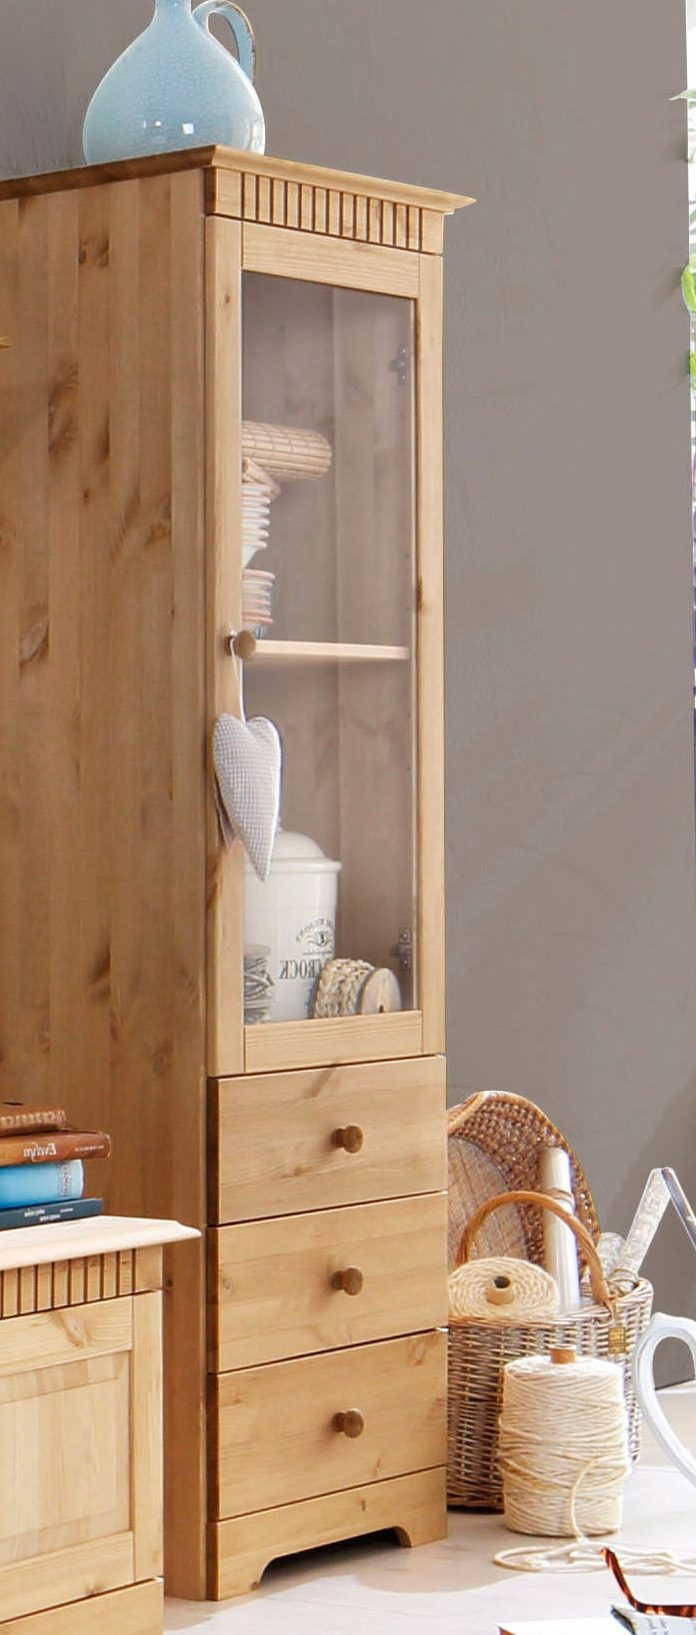 Home affaire Vitrine »Skagen«